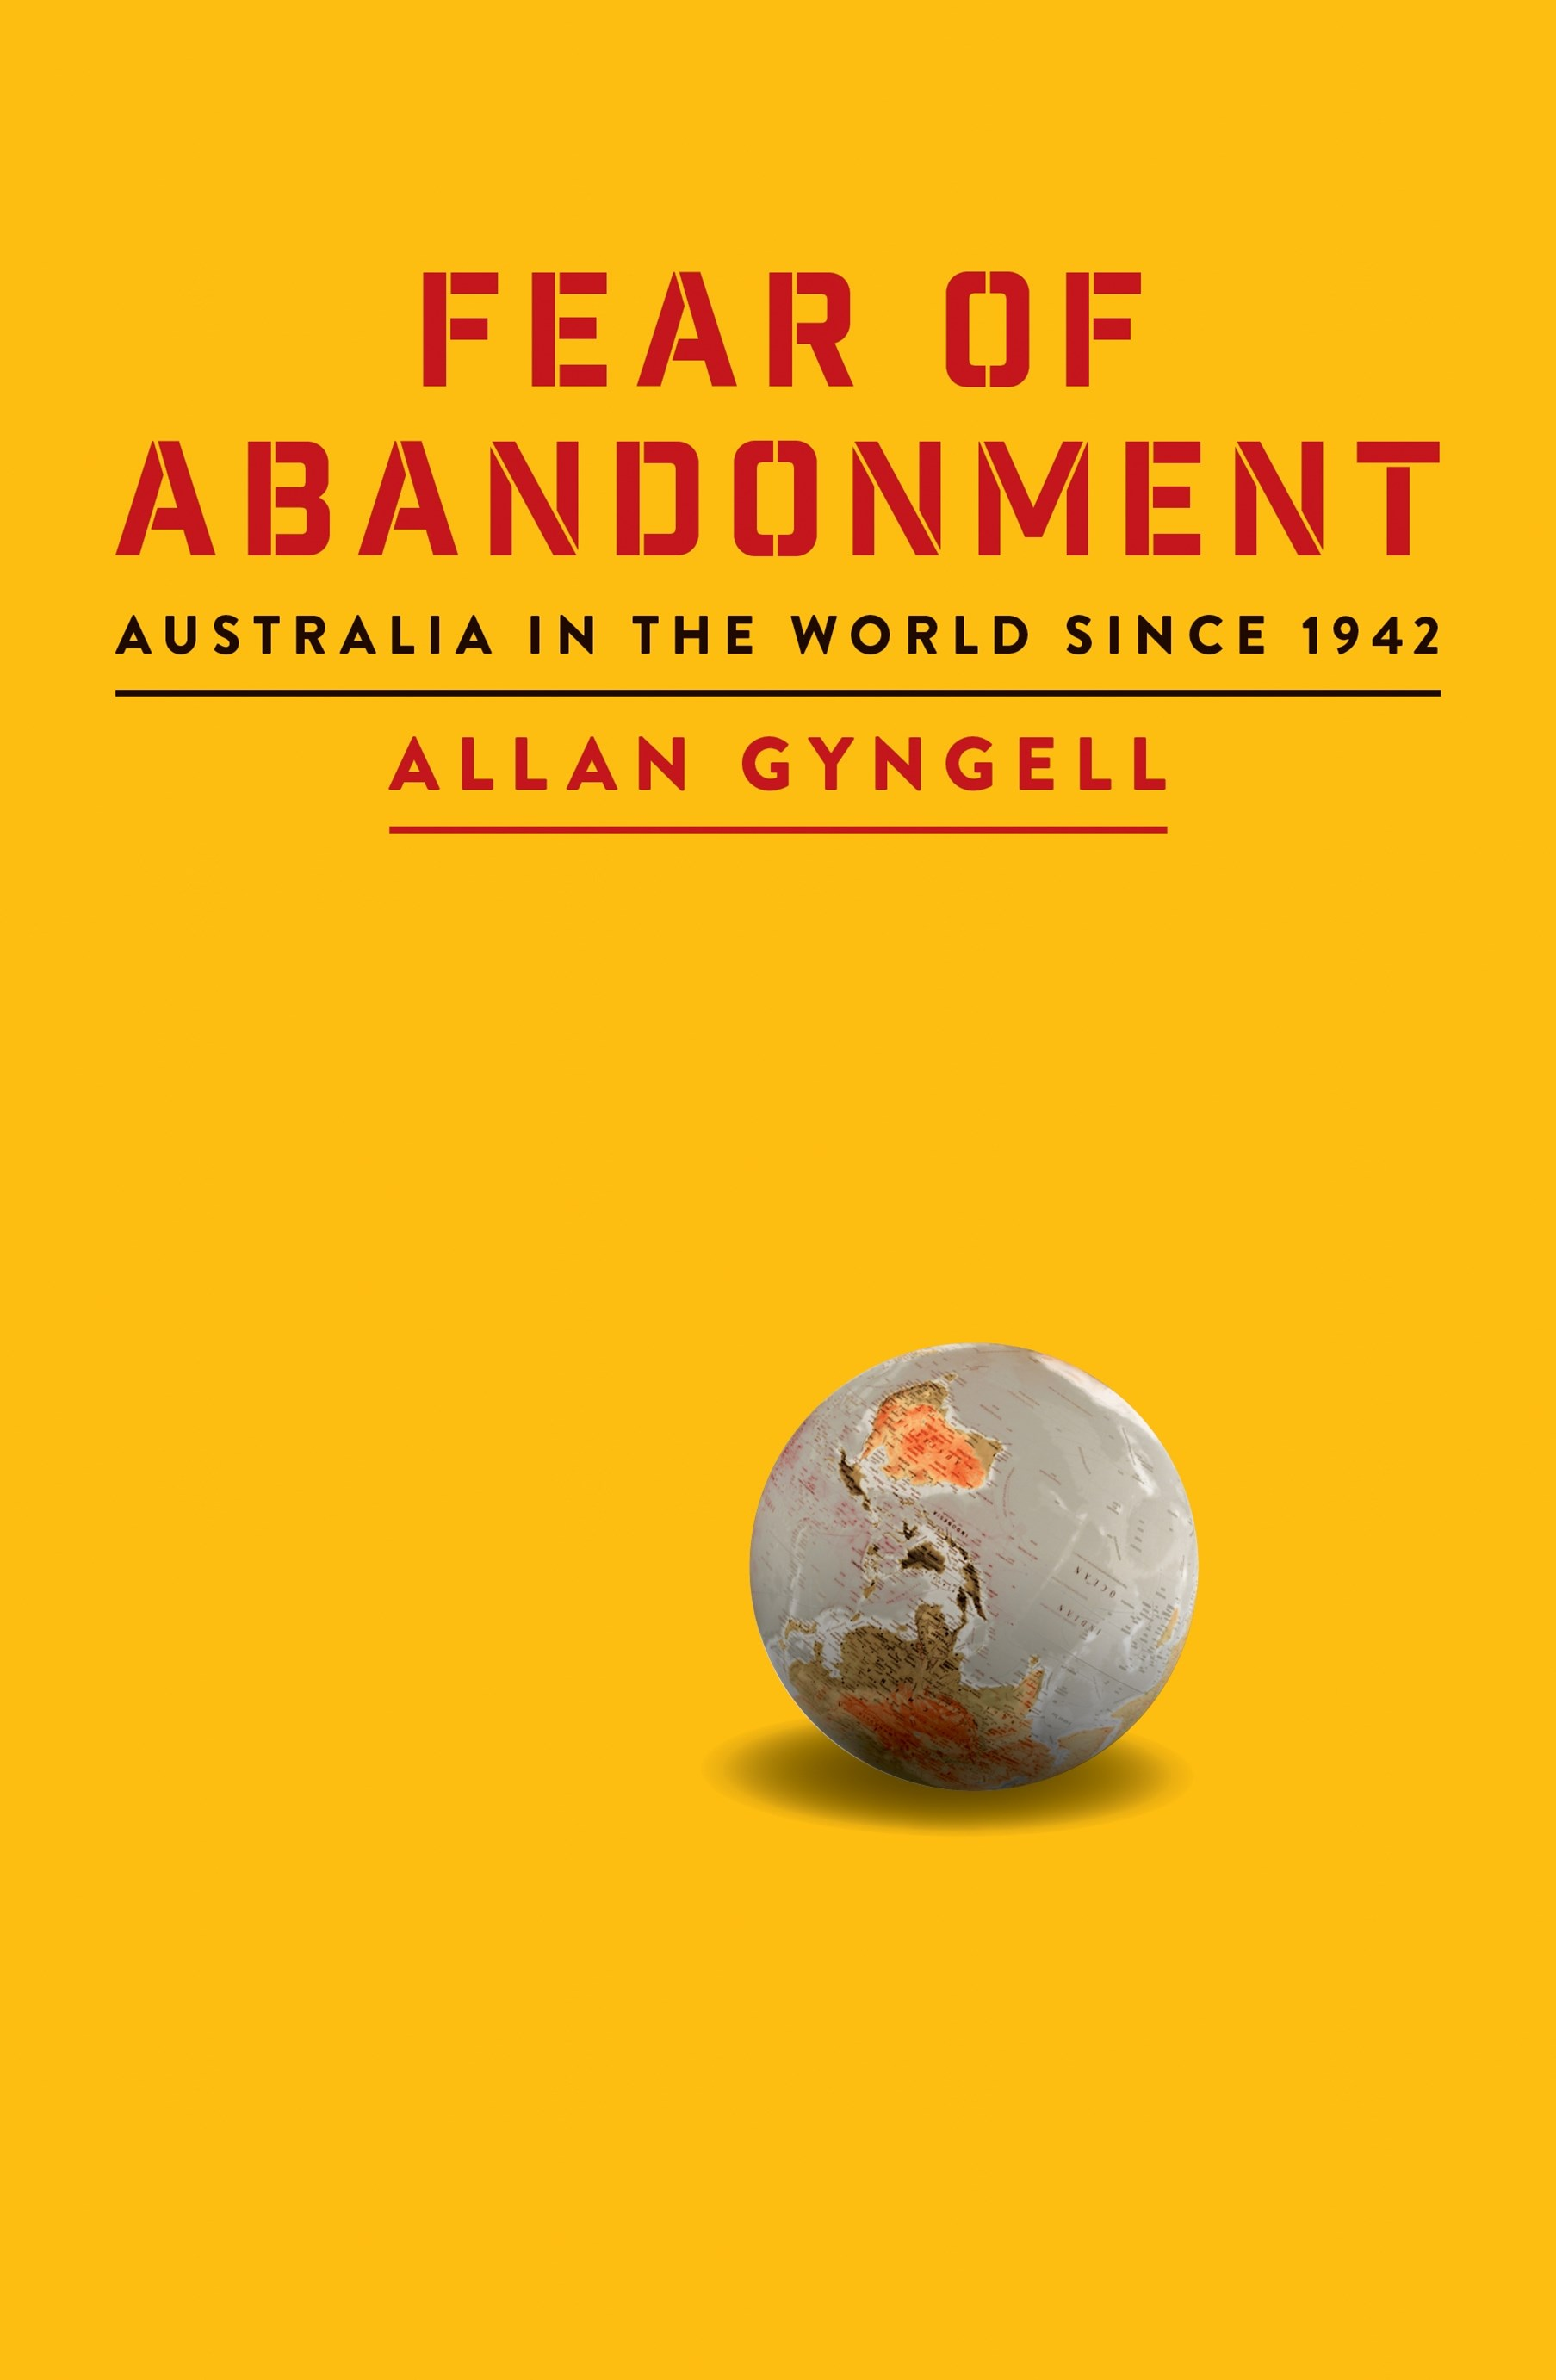 Fear of Abandonment: Australia in the world since 1942